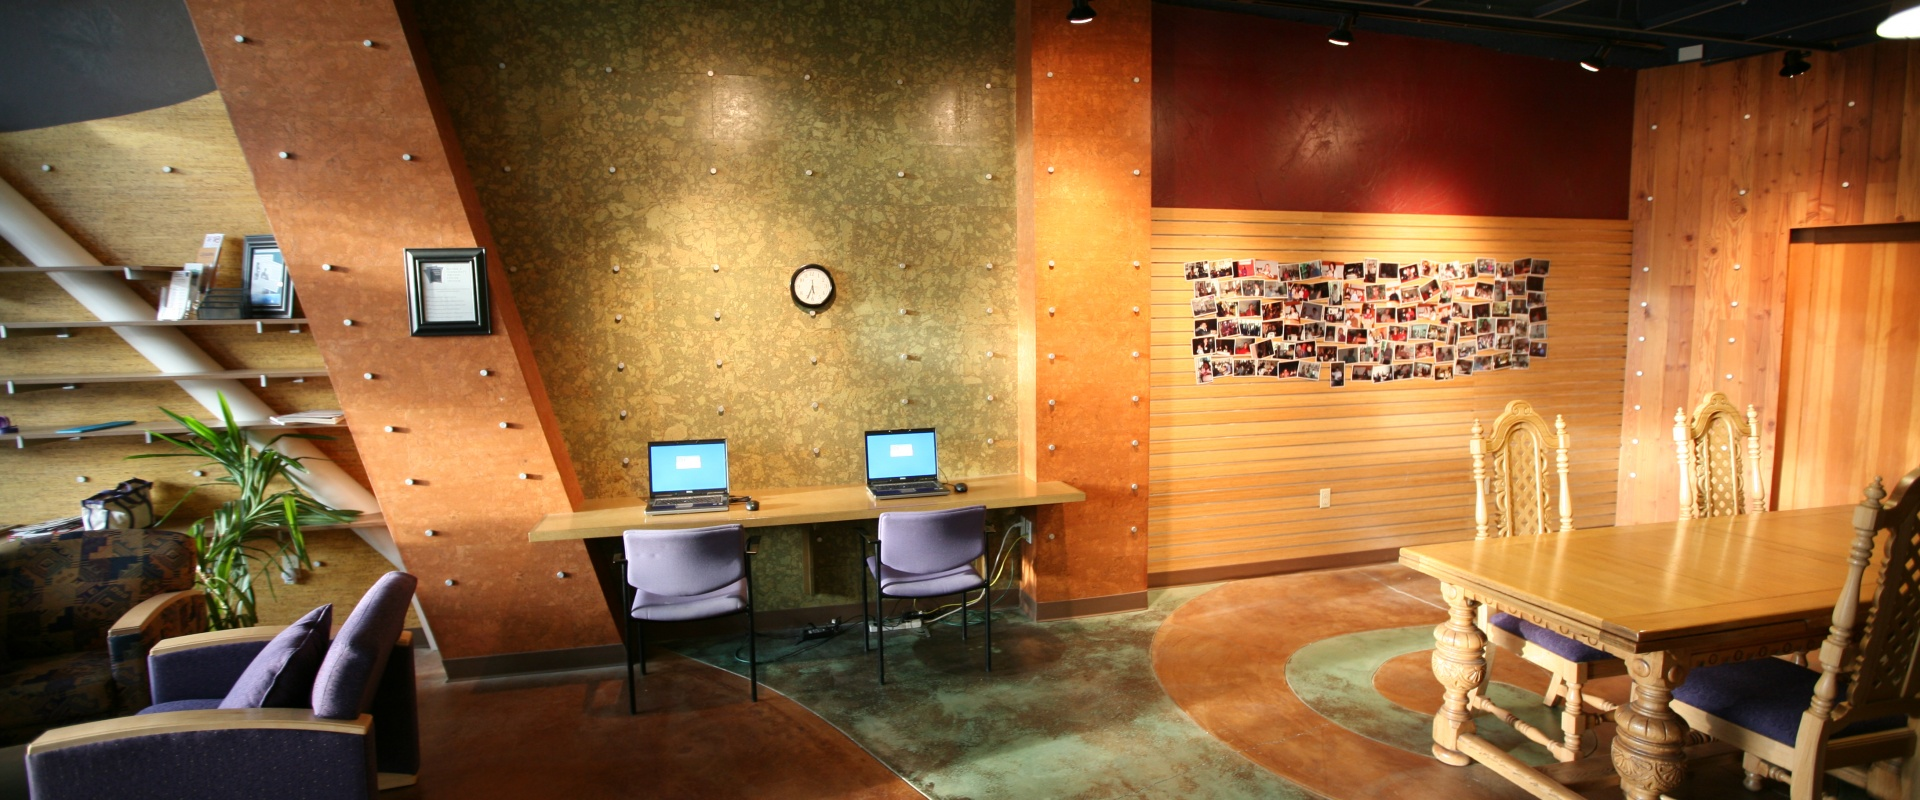 SLCC Writing Center - Library Square